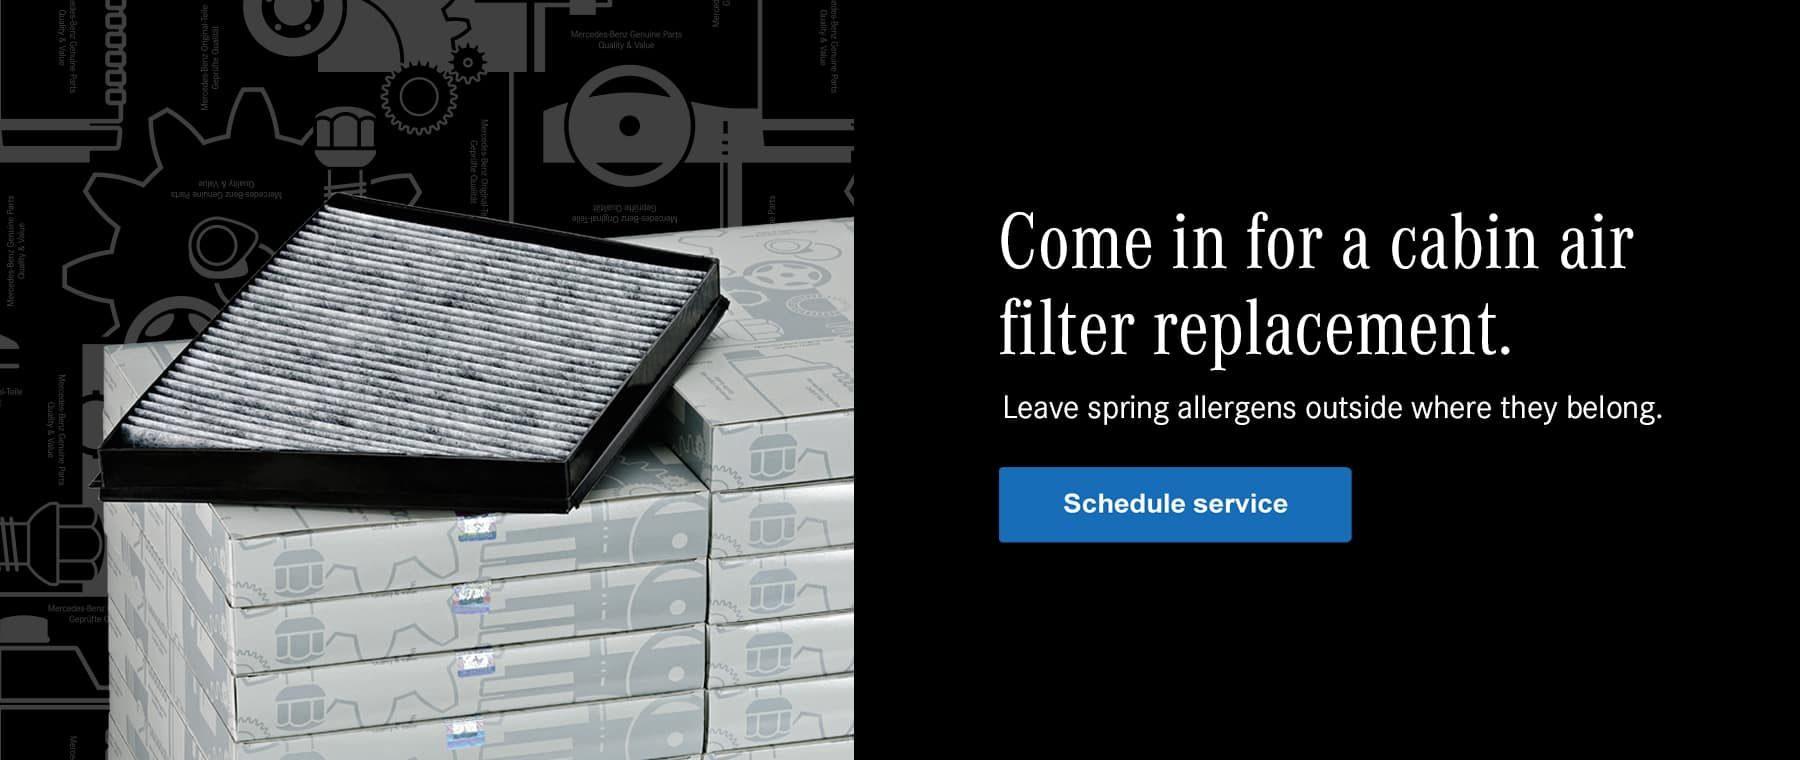 Mercedes-Benz air filter replacement services